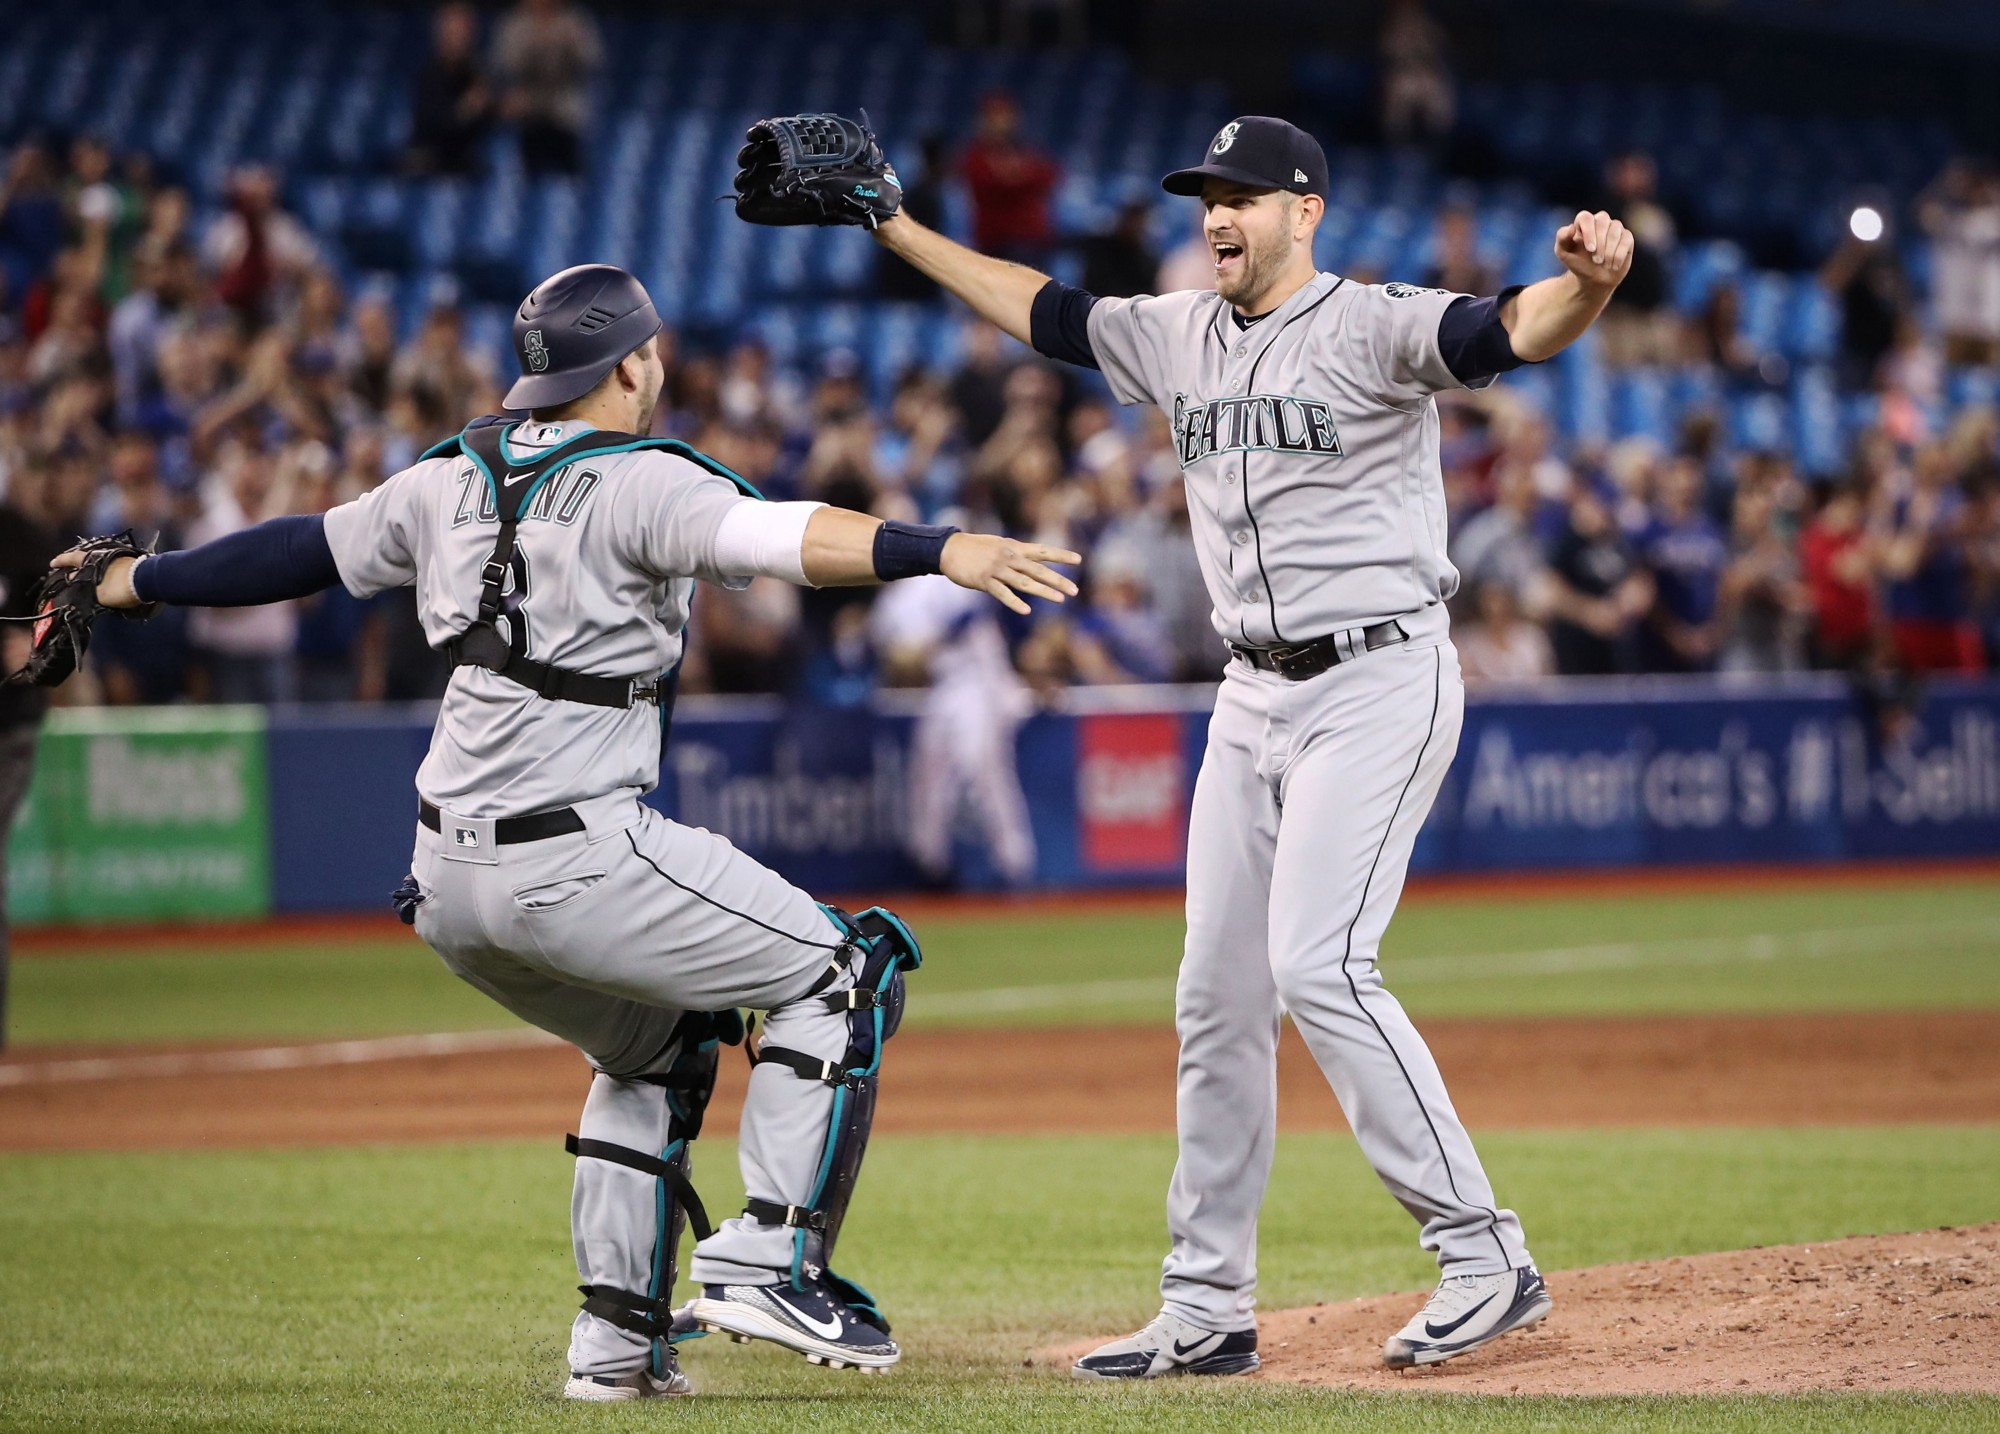 James Paxton Records 6th No-Hitter in Mariners History